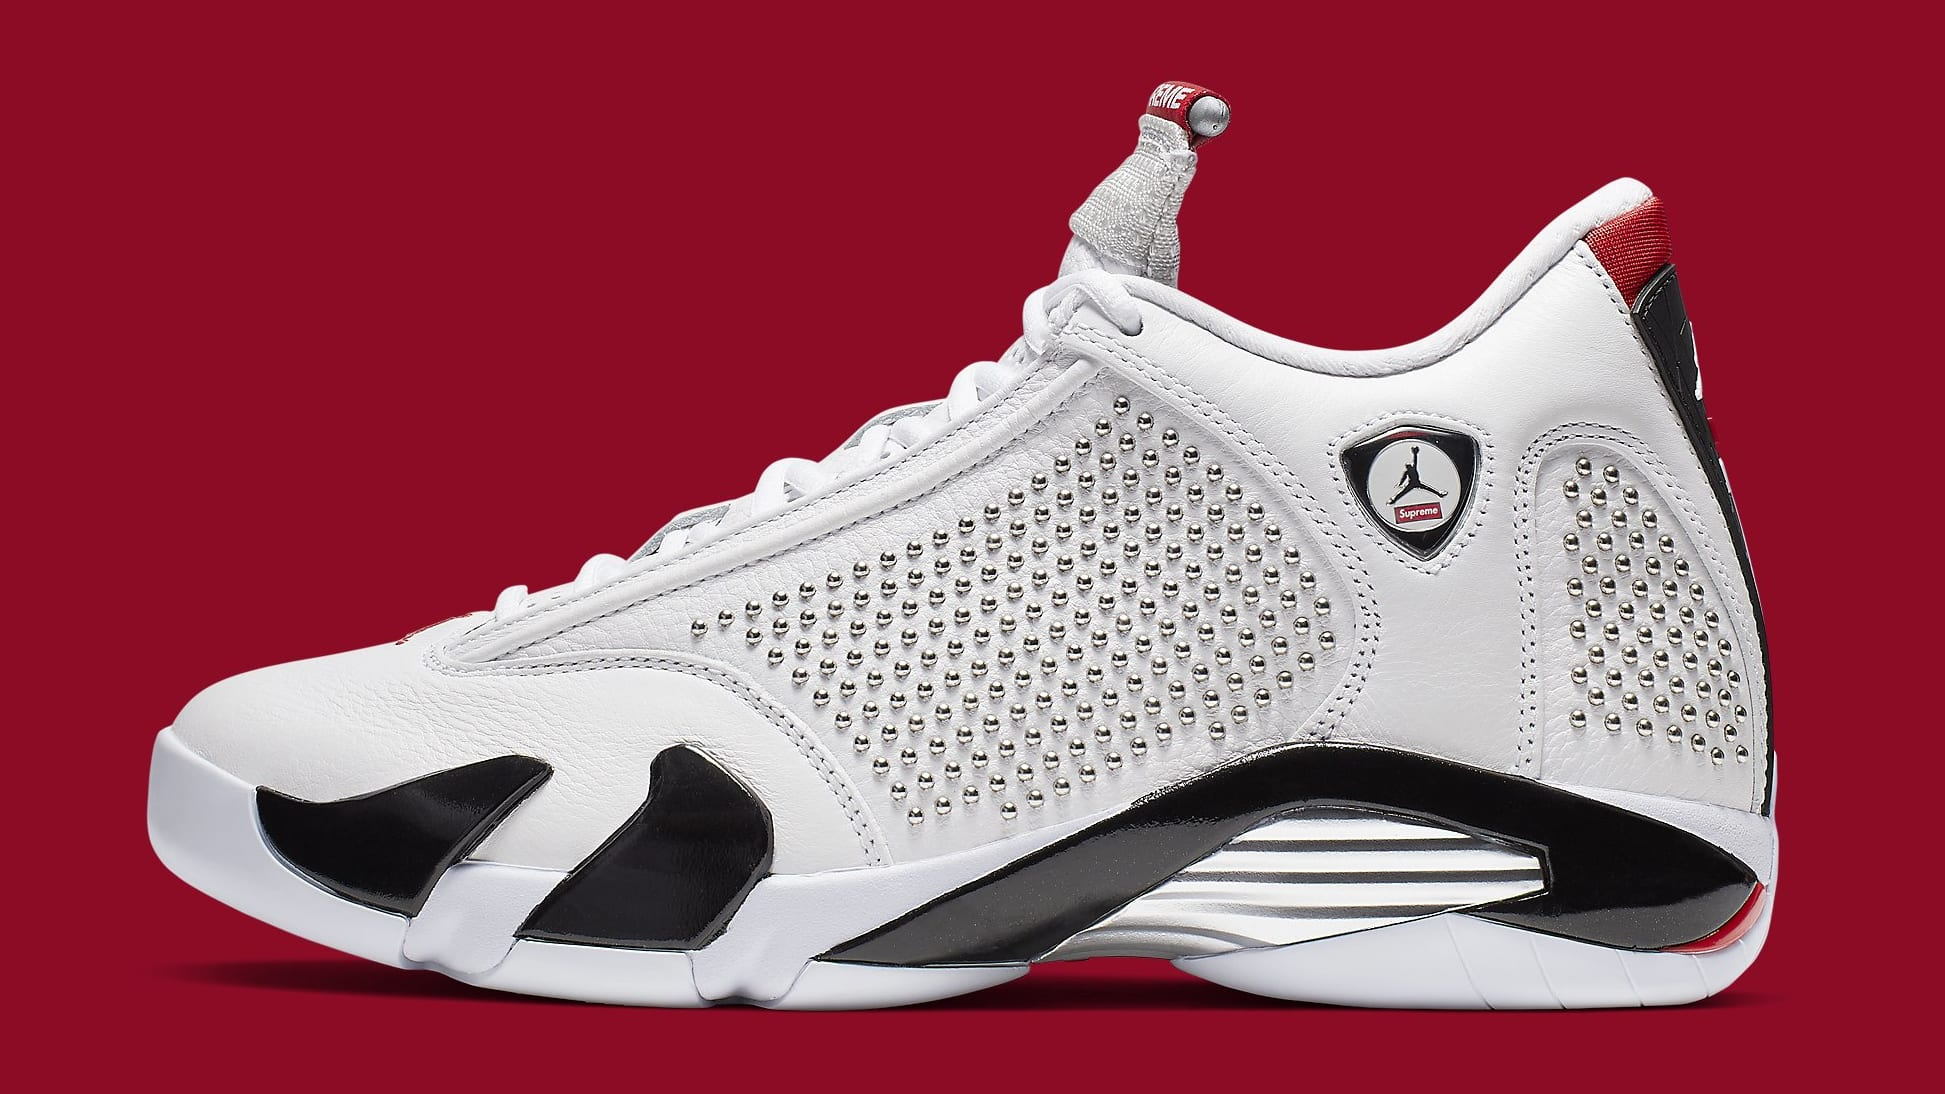 Supreme x Air Jordan 14 'White/University Red' BV7630-106 Lateral